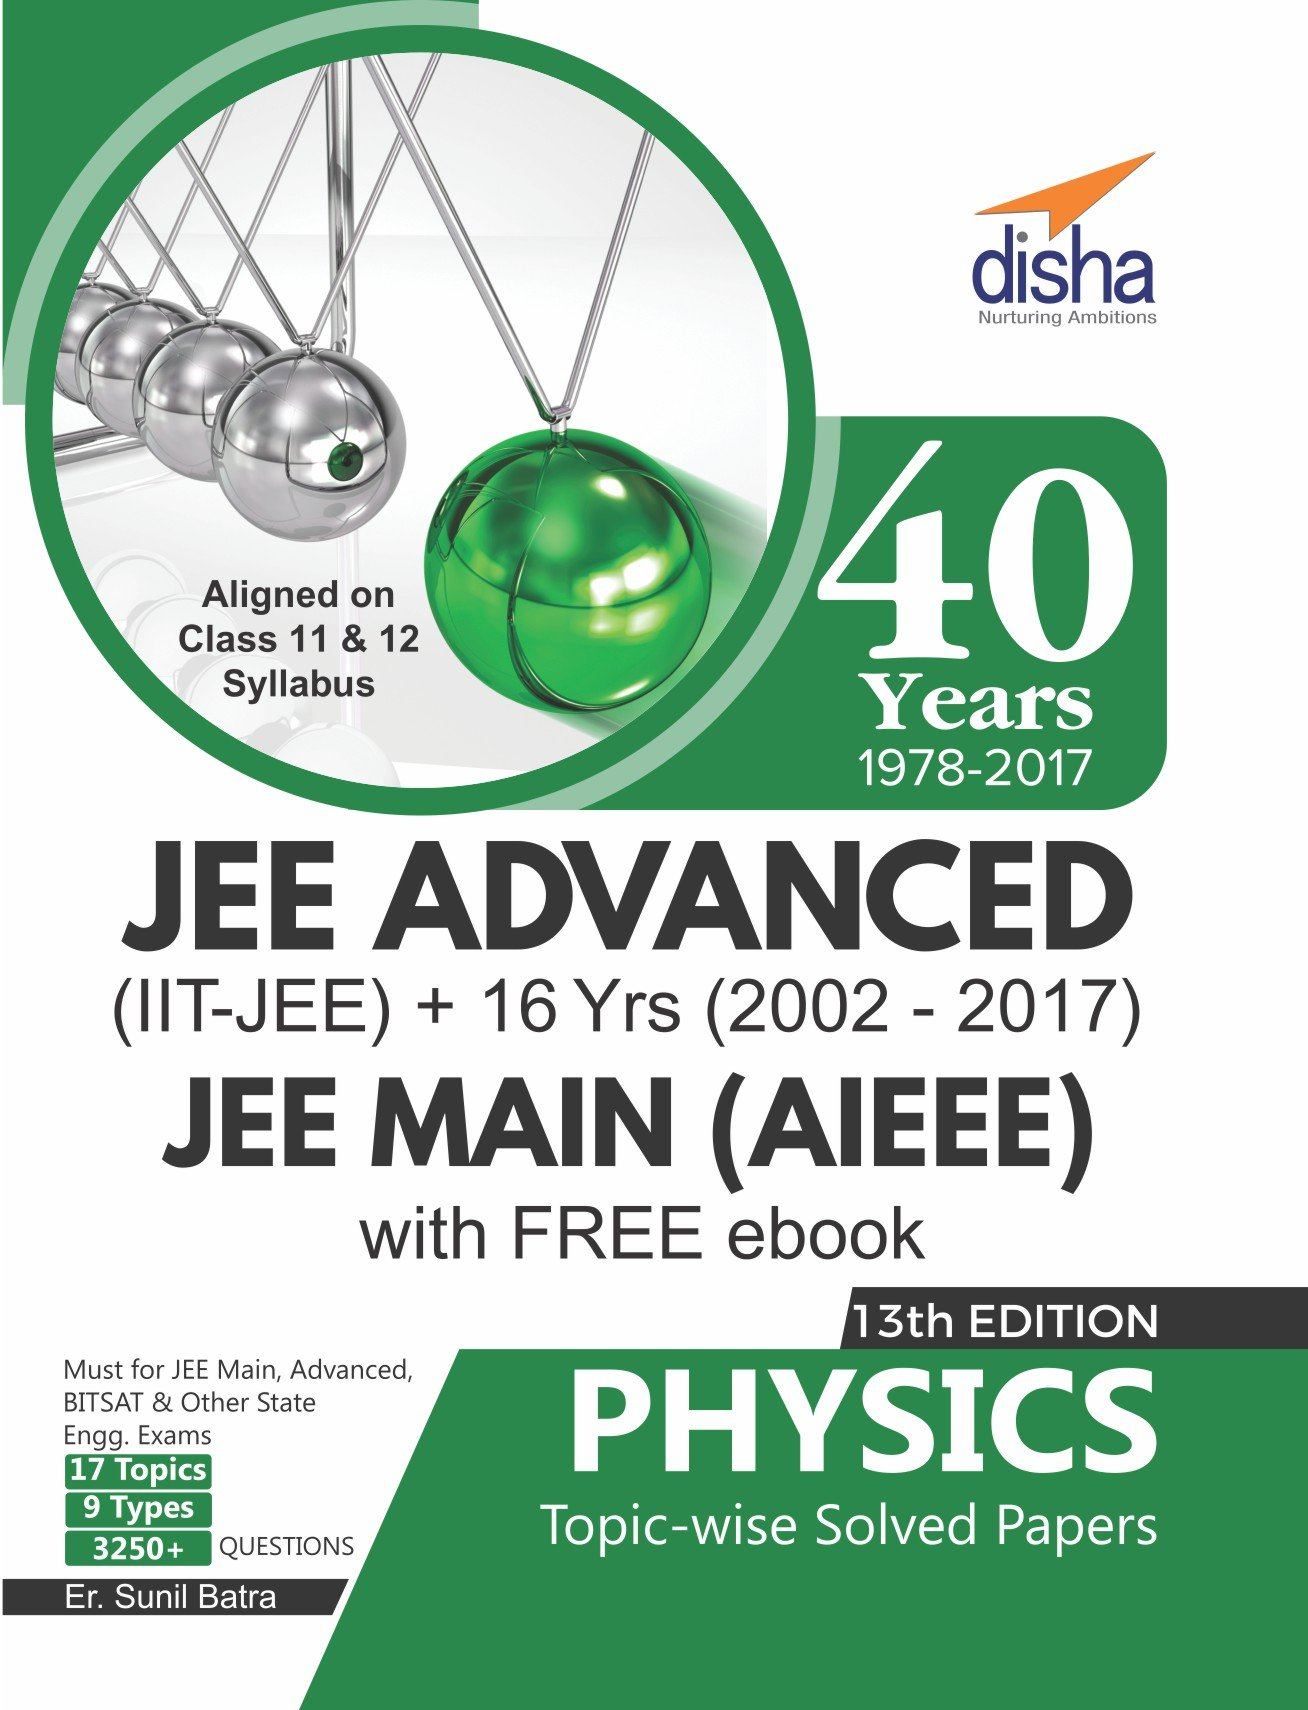 Iit Jee Previous Year Question Papers With Solutions Pdf